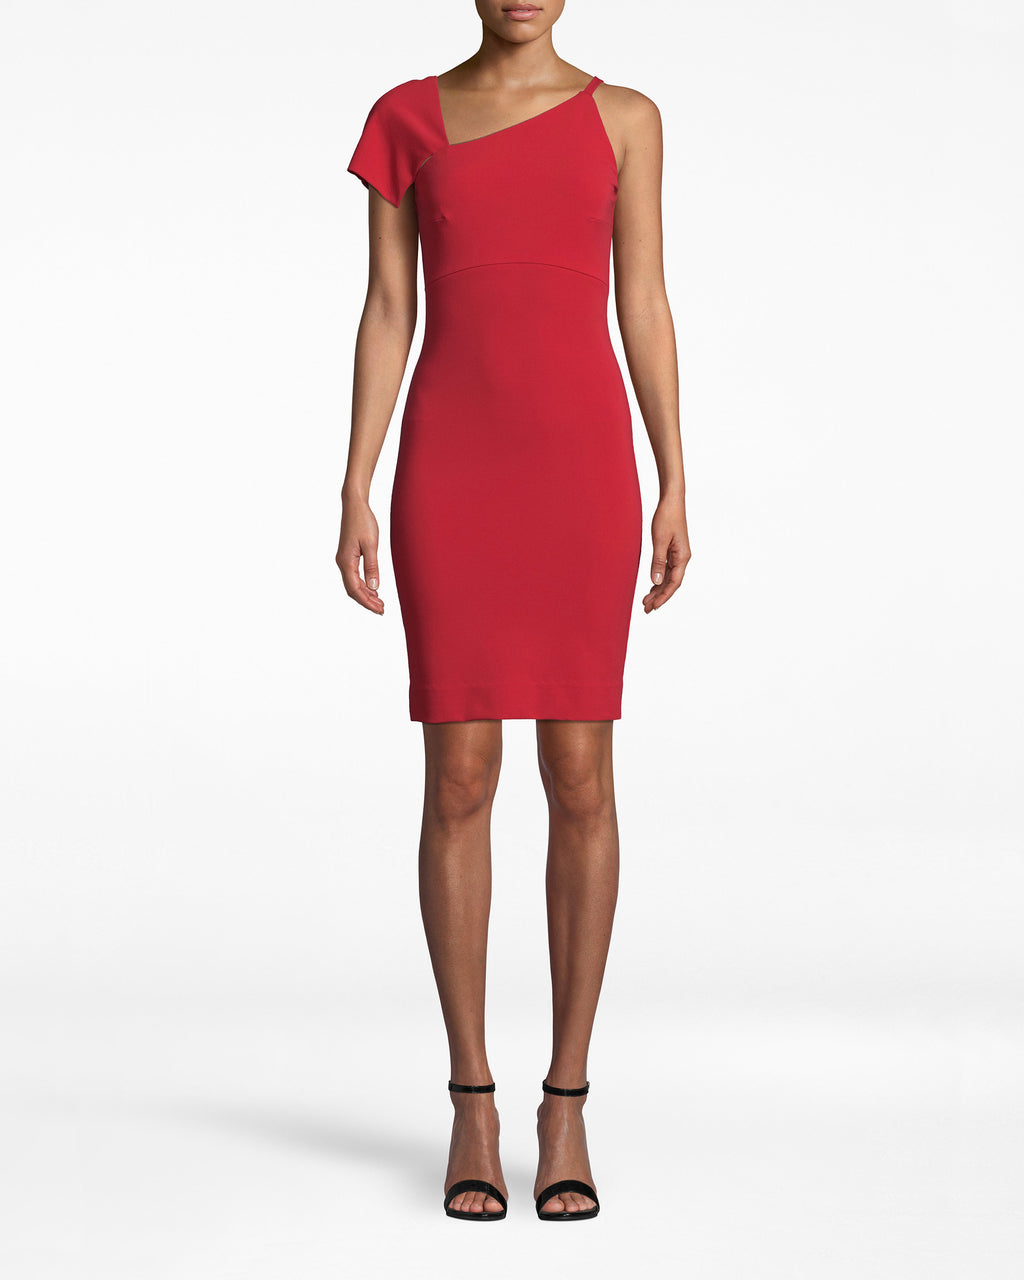 BM10223 - HEAVY JERSEY ONE SHOULDER MINI DRESS - dresses - short - Feeling fancy? This multi-shouldered dress is sure to stun. The right short sleeve elegantly drapes to the arm while the strapless left side enhances the shoulder. Choose Cherry Red for a more daring look, or Black for simple chic. Exposed back zipper for closure.